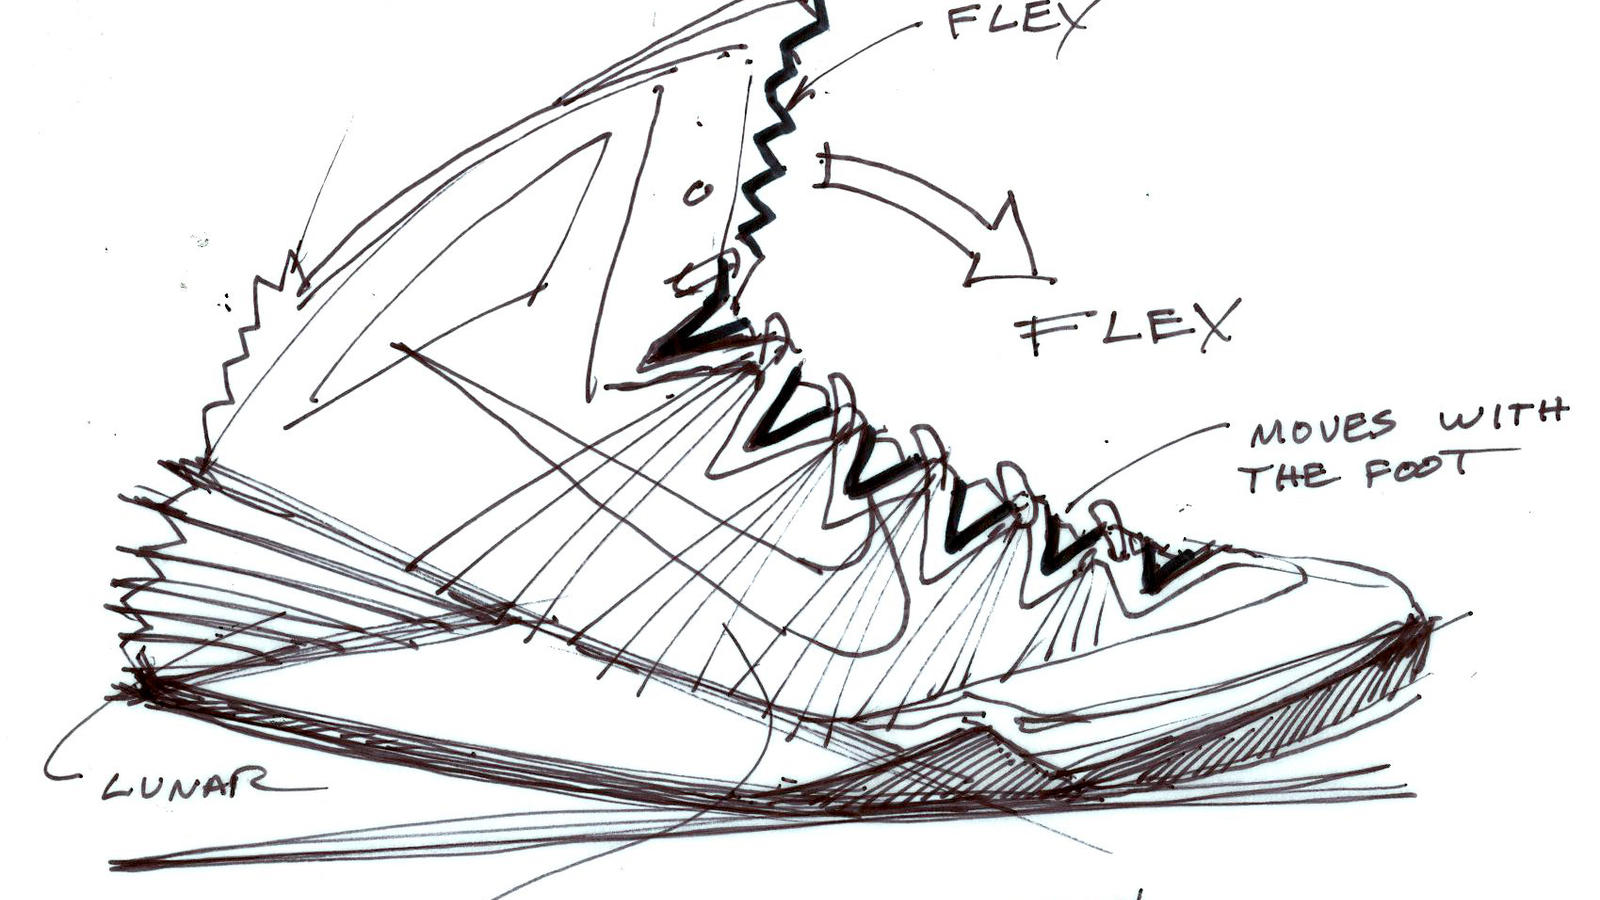 b687177fcfa March 2008 ushered in a new breed of basketball shoe as the Nike Hyperdunk  debuted for the Beijing games. Kobe Bryant soared over a car in a viral  film ...